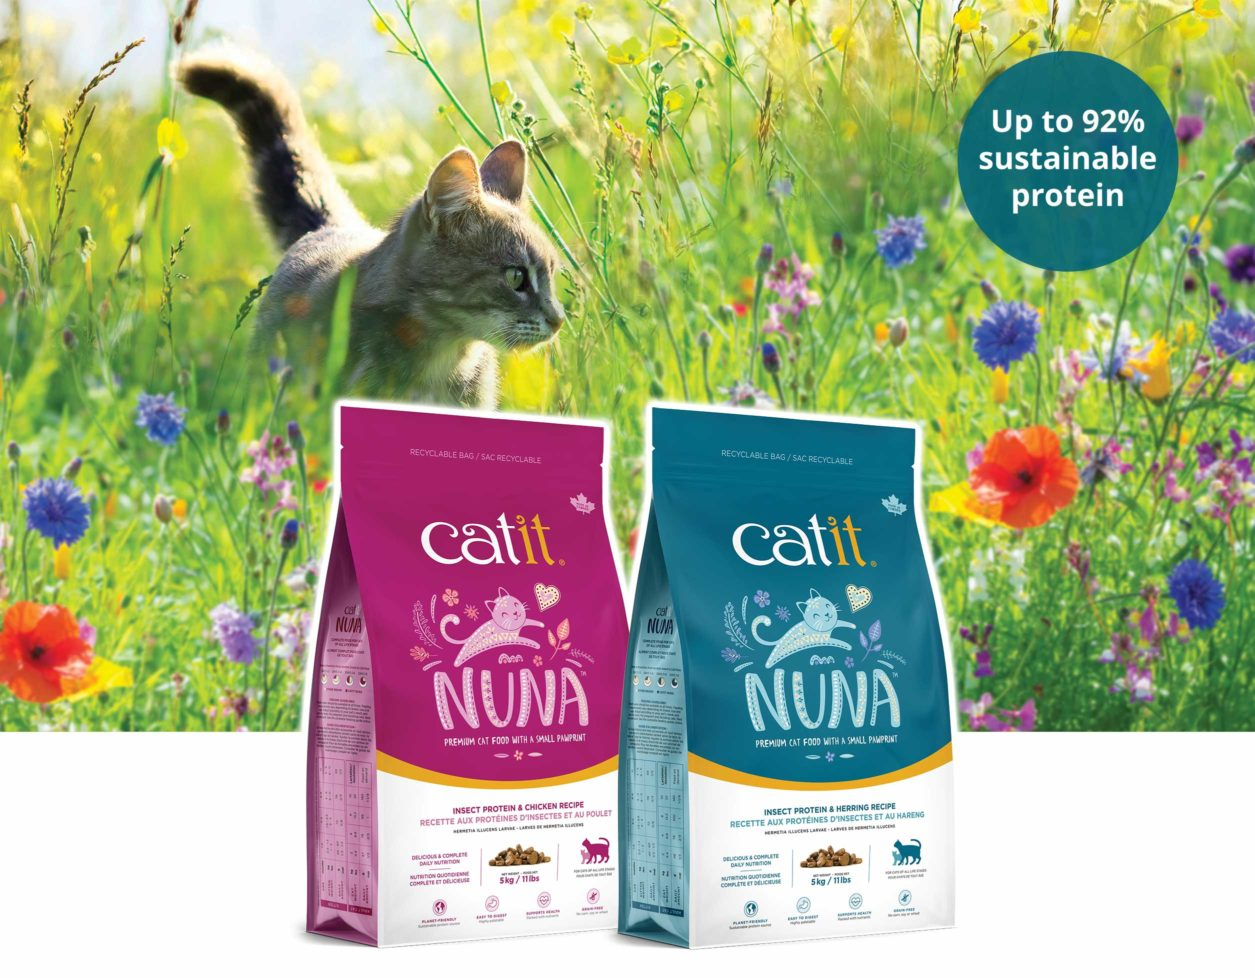 Nuna insect-based cat food - Cat in grass field